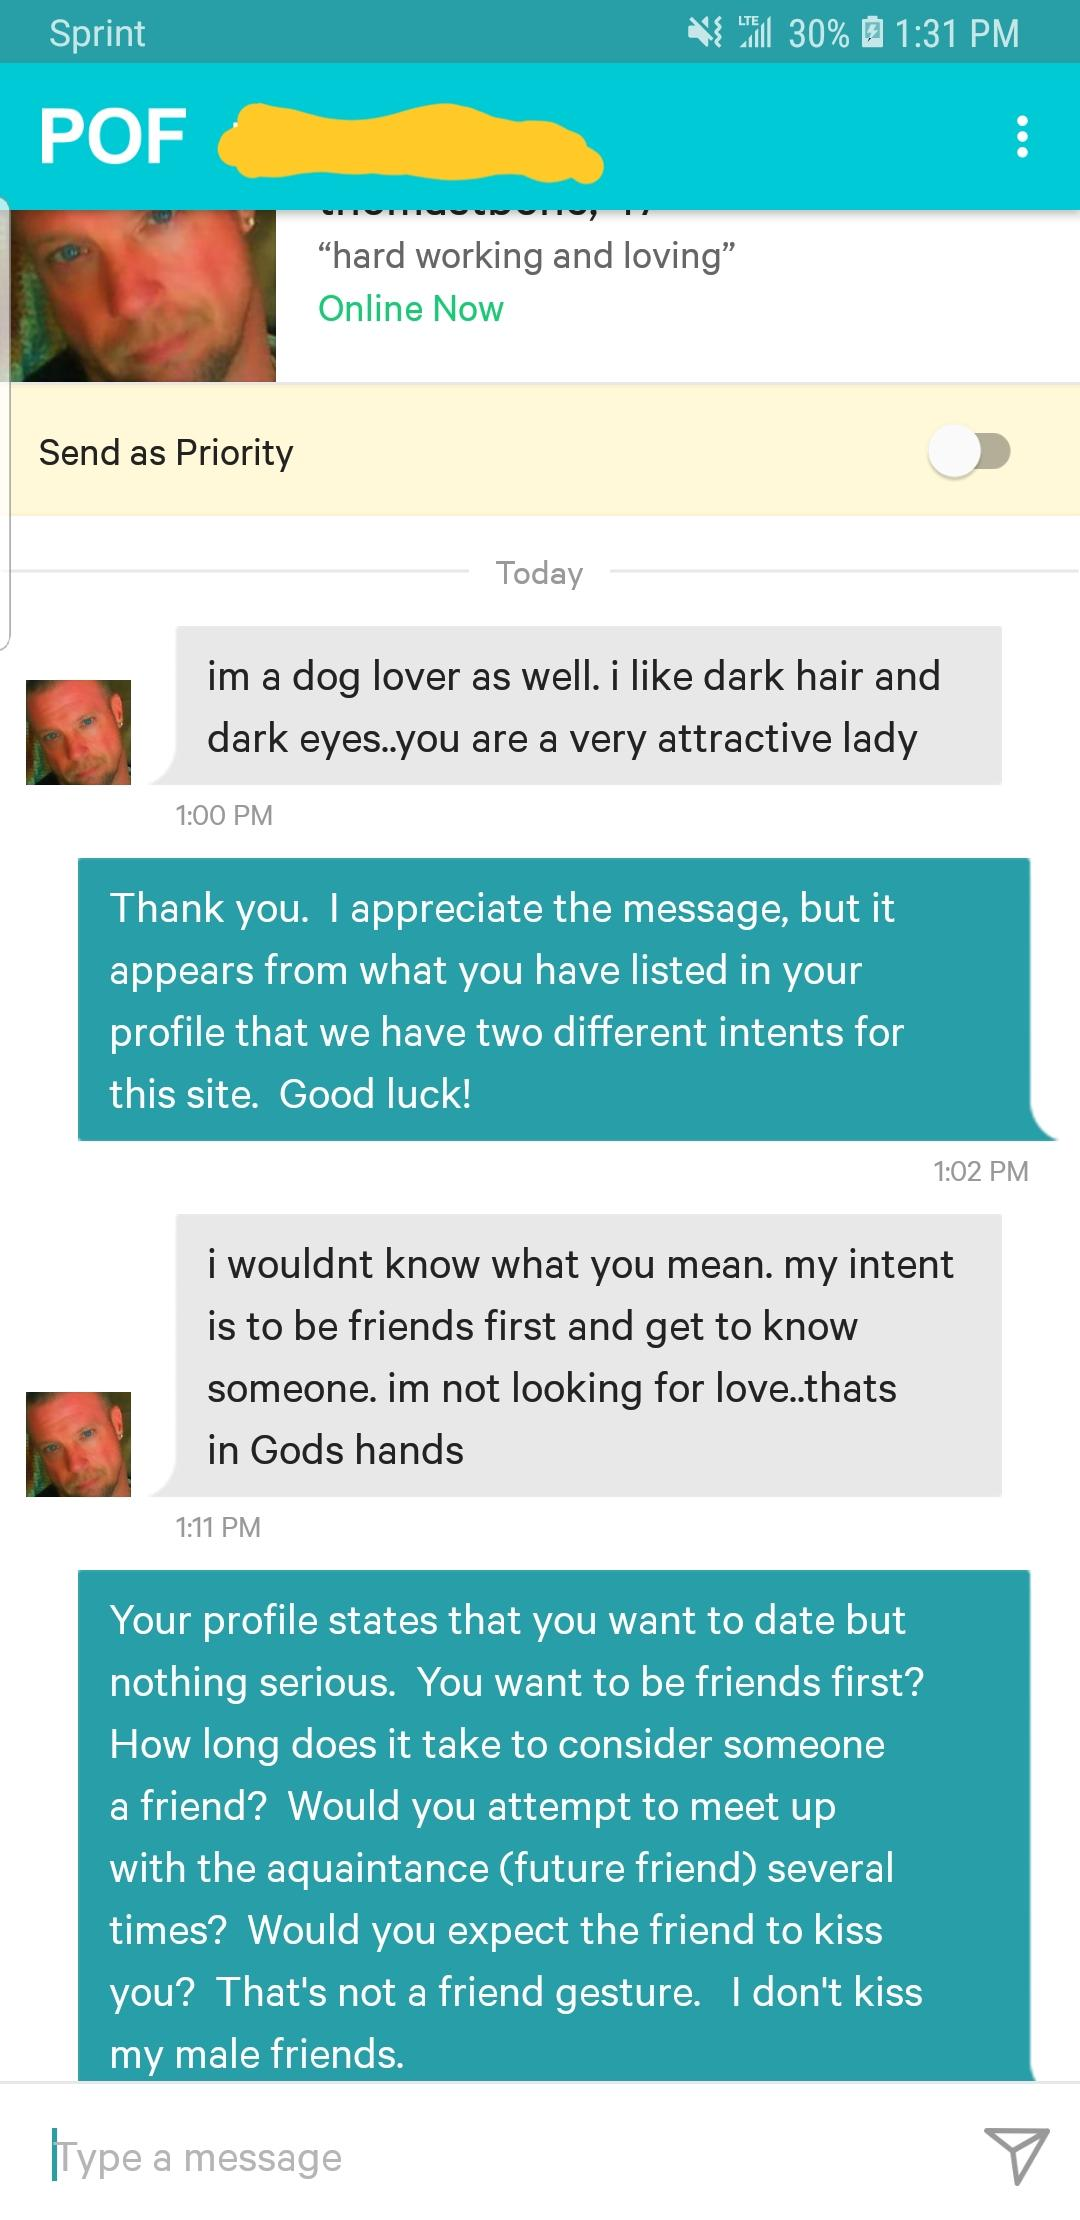 POF : I'm not looking for love    That's in God's